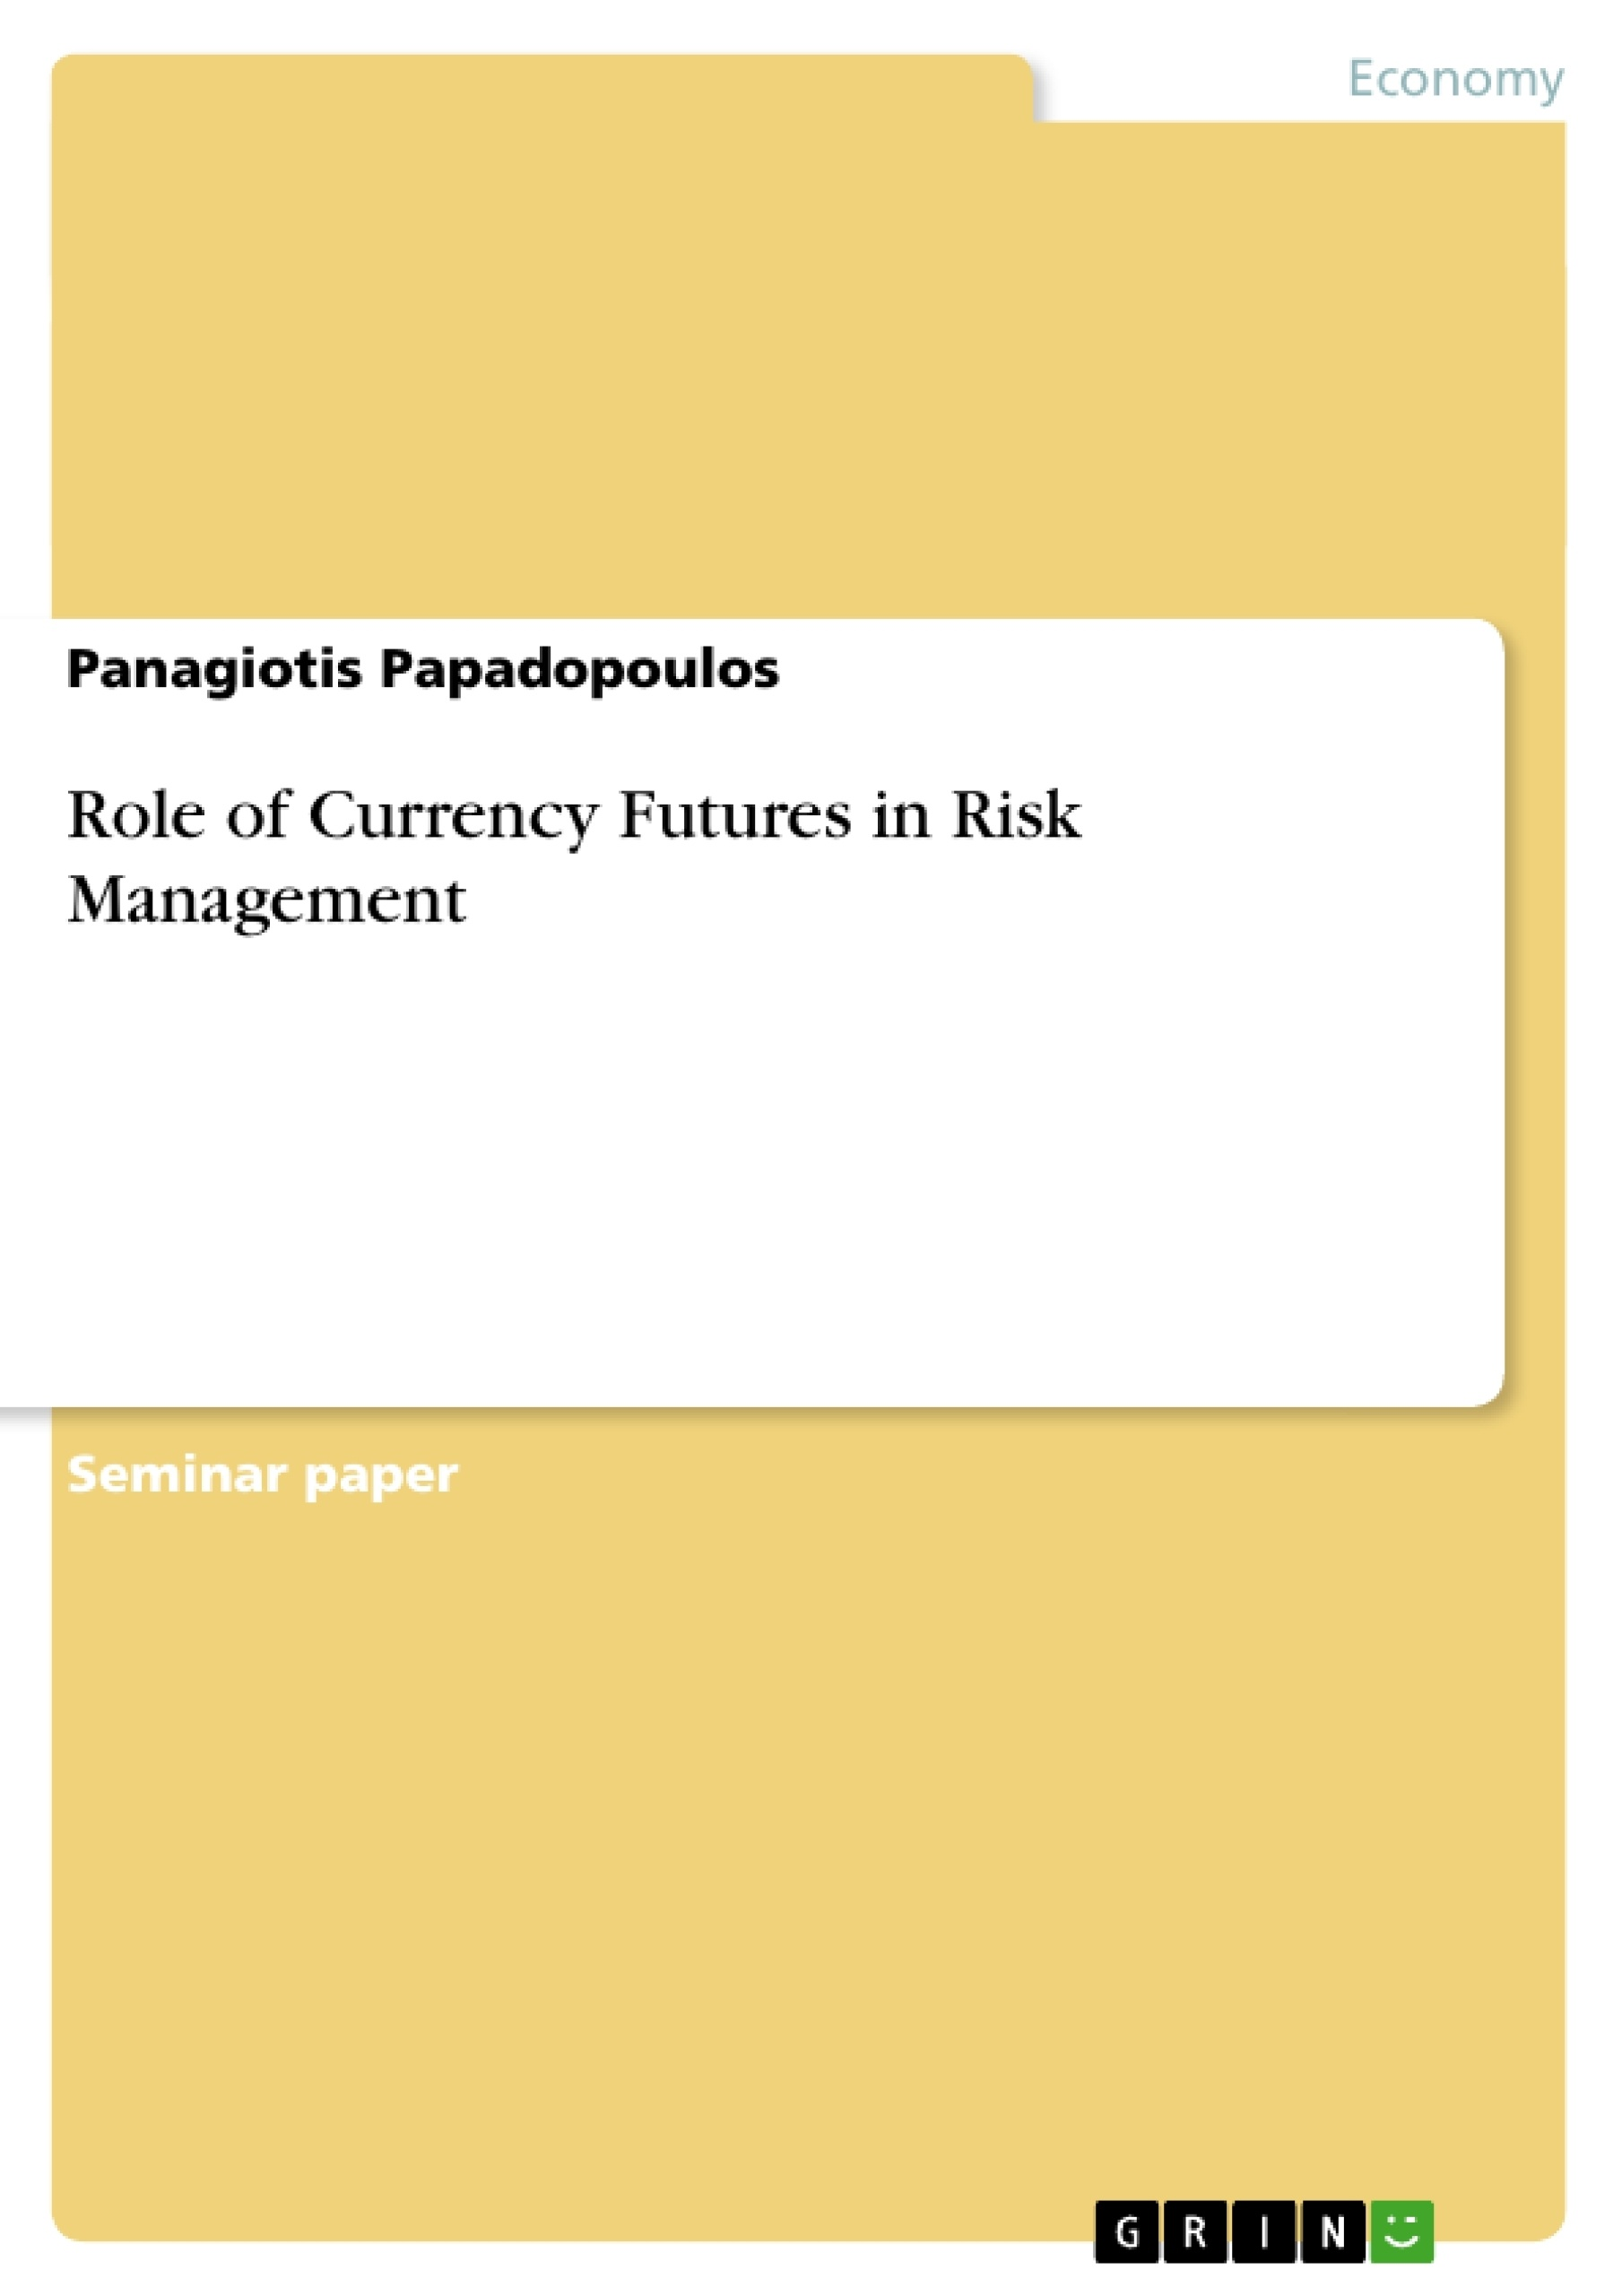 Title: Role of Currency Futures in Risk Management